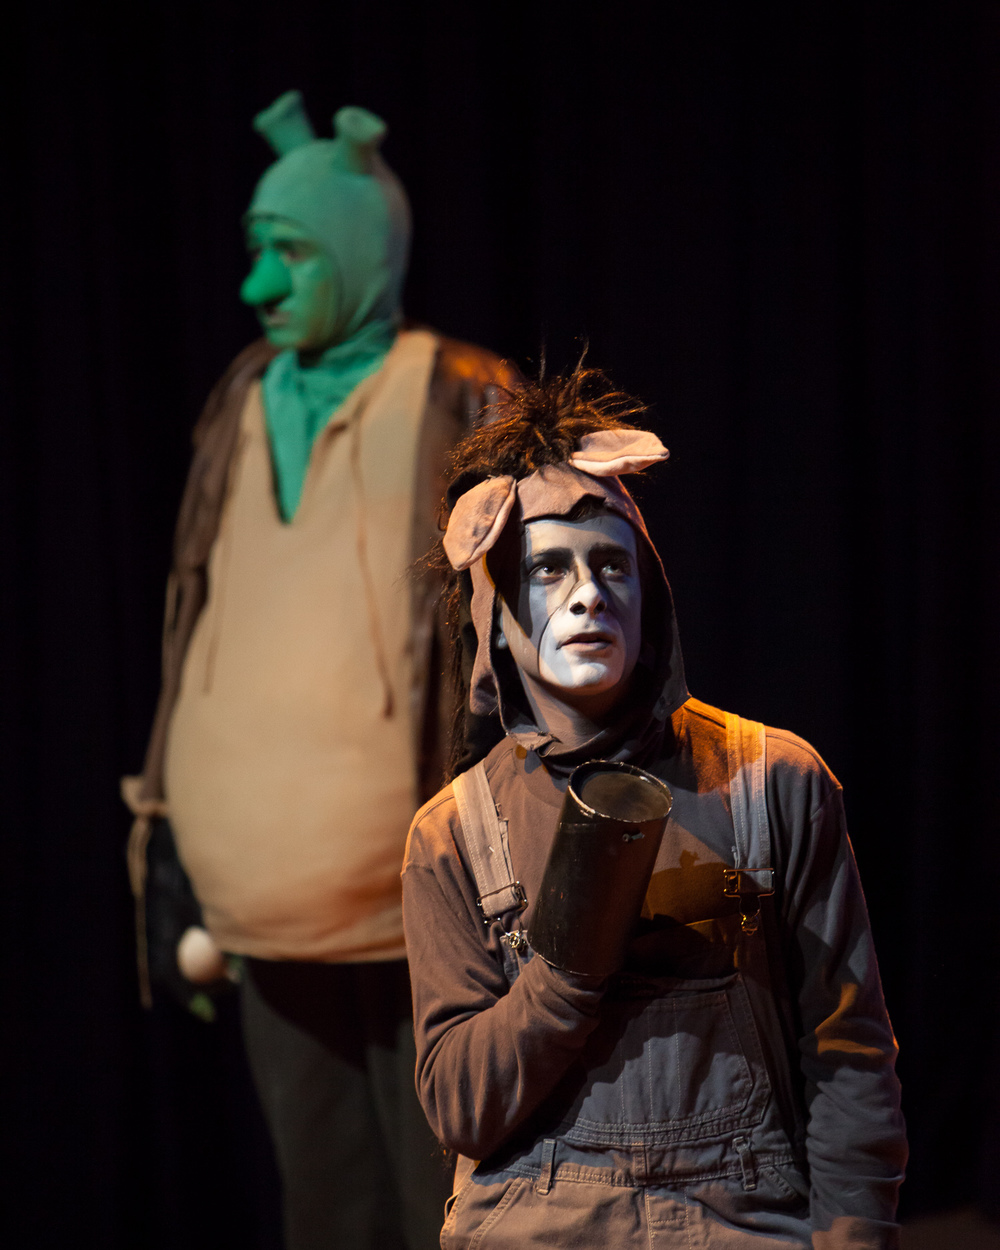 Gabe Koskinen-Sansone in SHREK at Denver School of the Arts. at the Denver Center Theatre Company, photo by Jennifer Koskinen, Merritt Design Photo